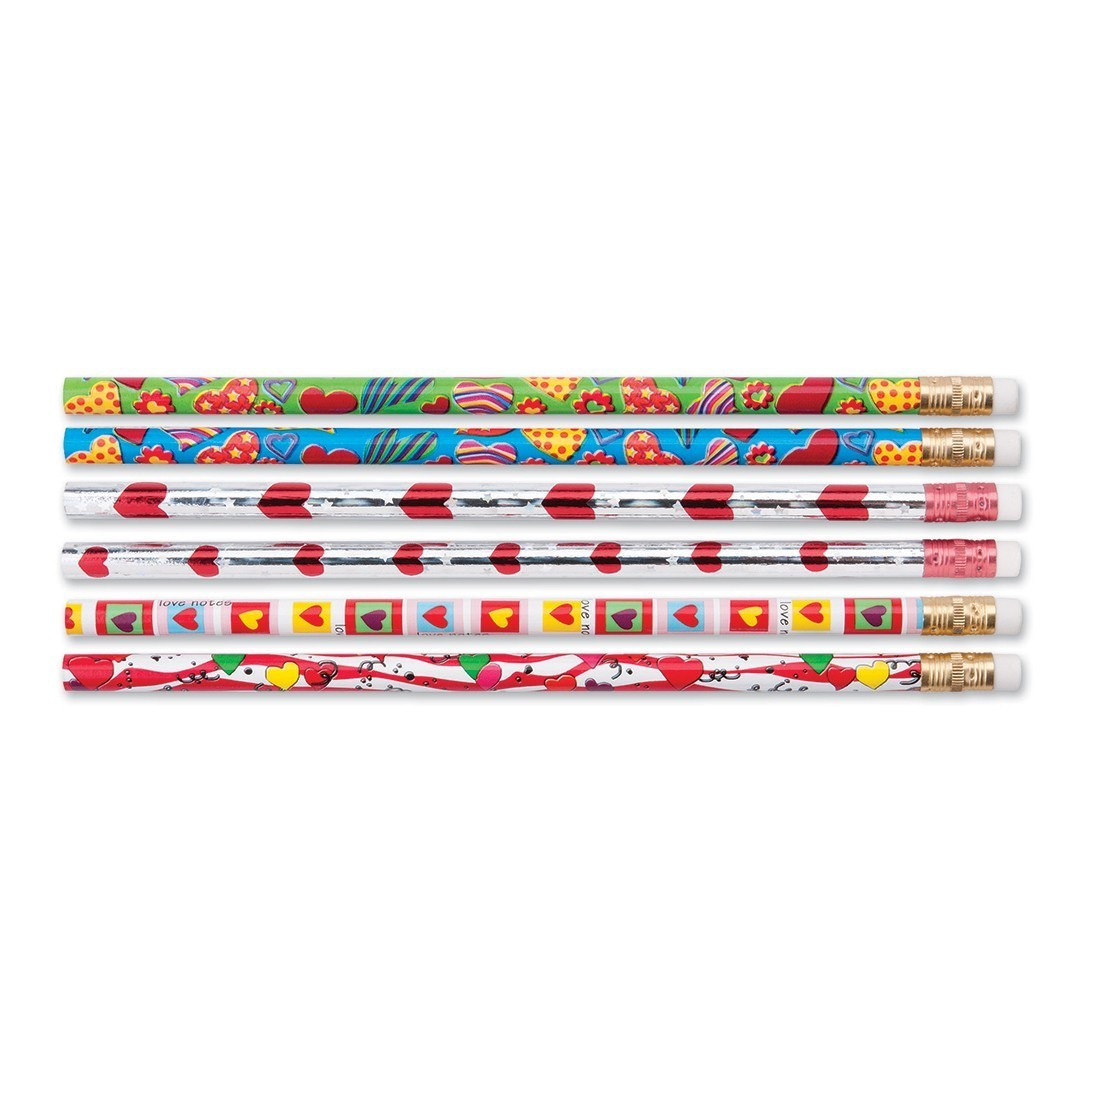 Valentines Day Pencil Mix [image]